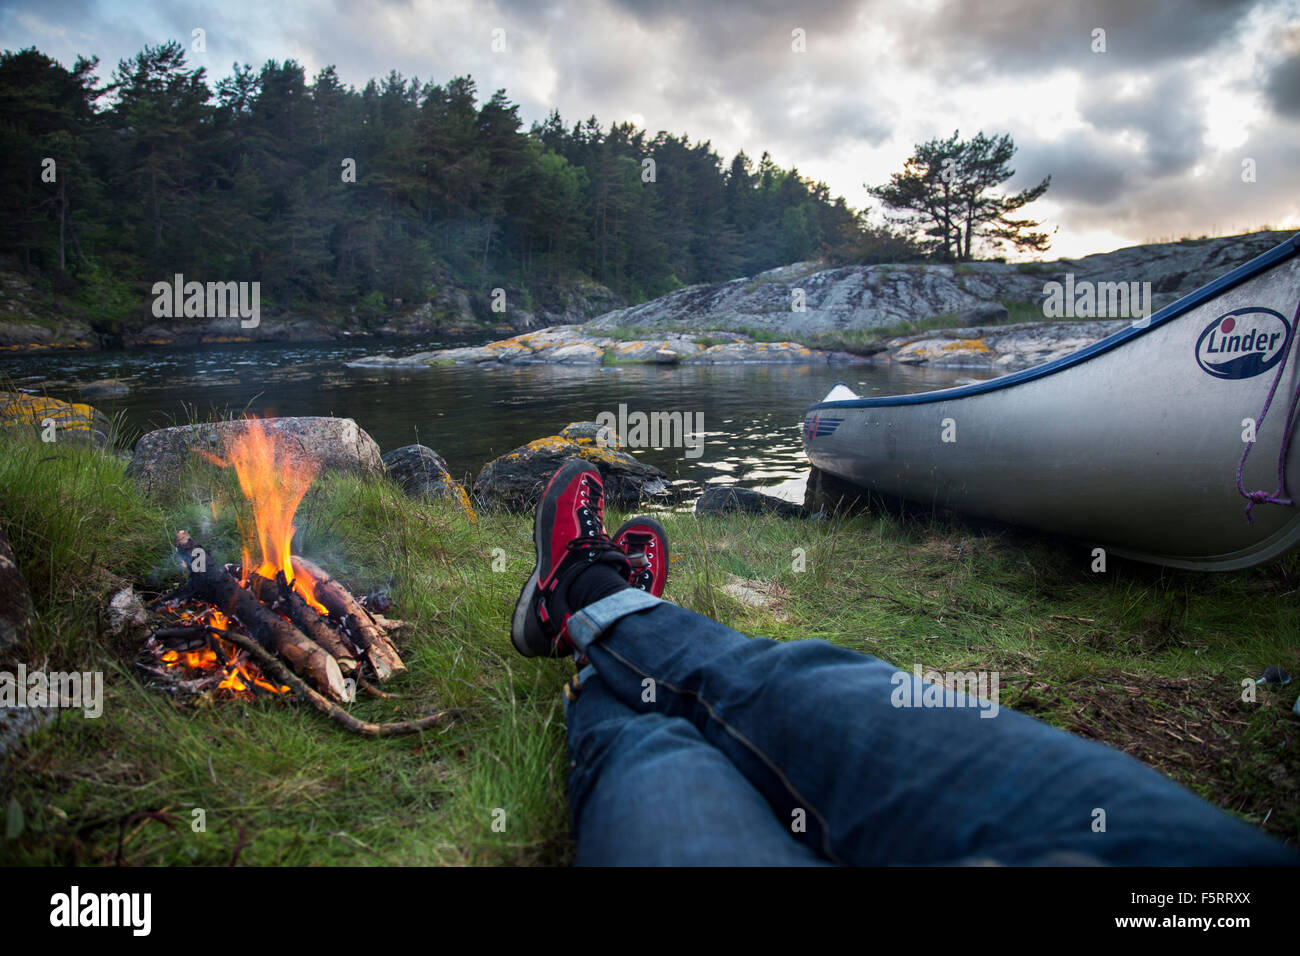 Sweden, West Coast, Bohuslan, Flato, Personal perspective of man lying by campfire on riverbank - Stock Image